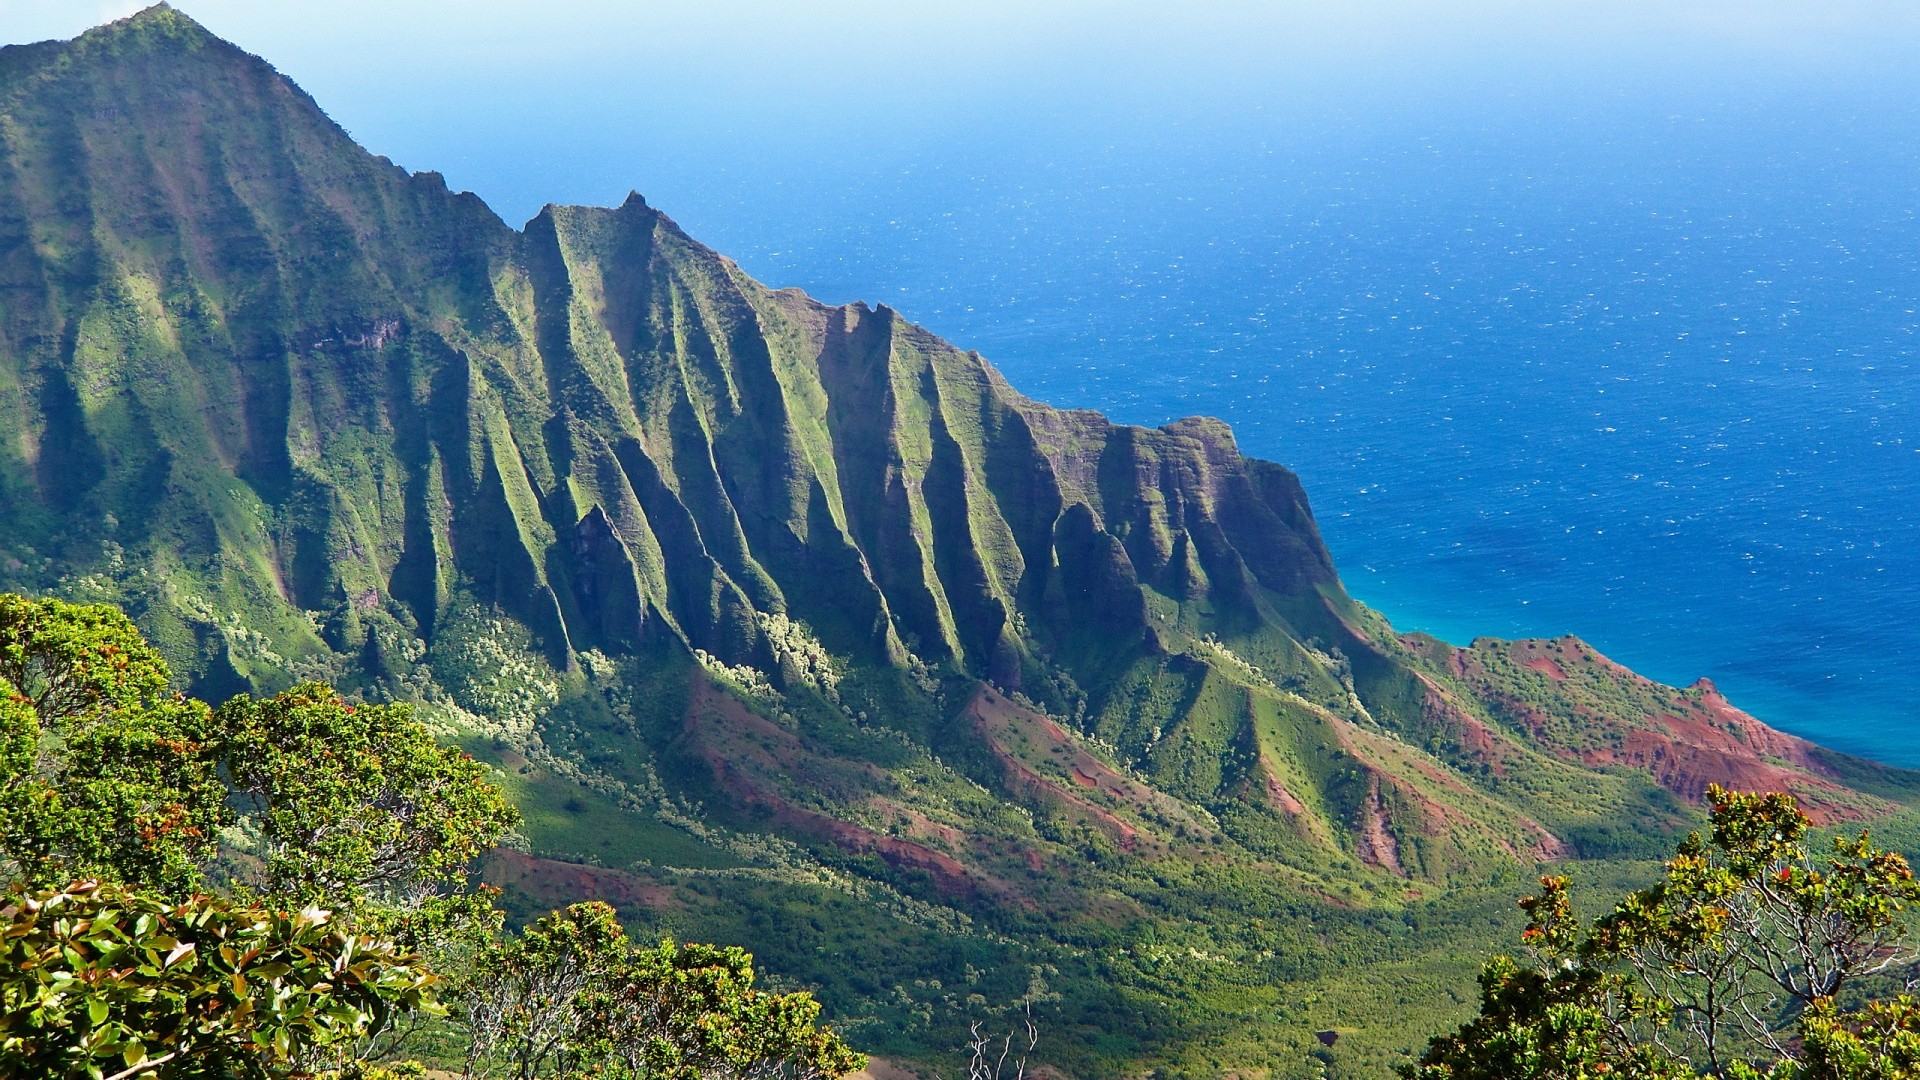 kalalau valley hawaii Wallpapers HD Pictures